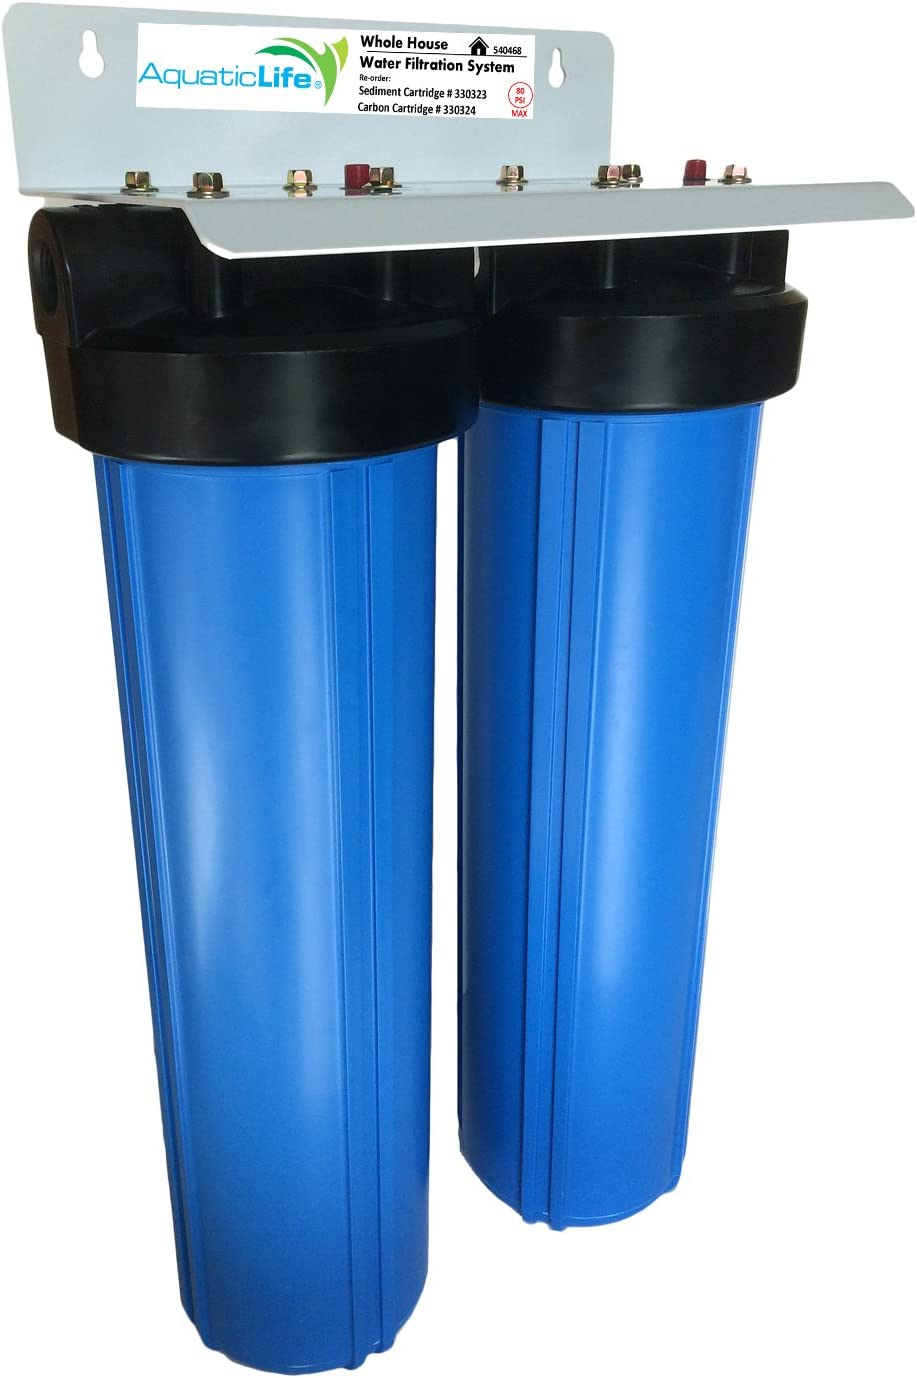 """Aquatic Life Two-Stage 20"""" x 4.5"""" Whole House Water Filtration System, 3/4"""" NPT"""